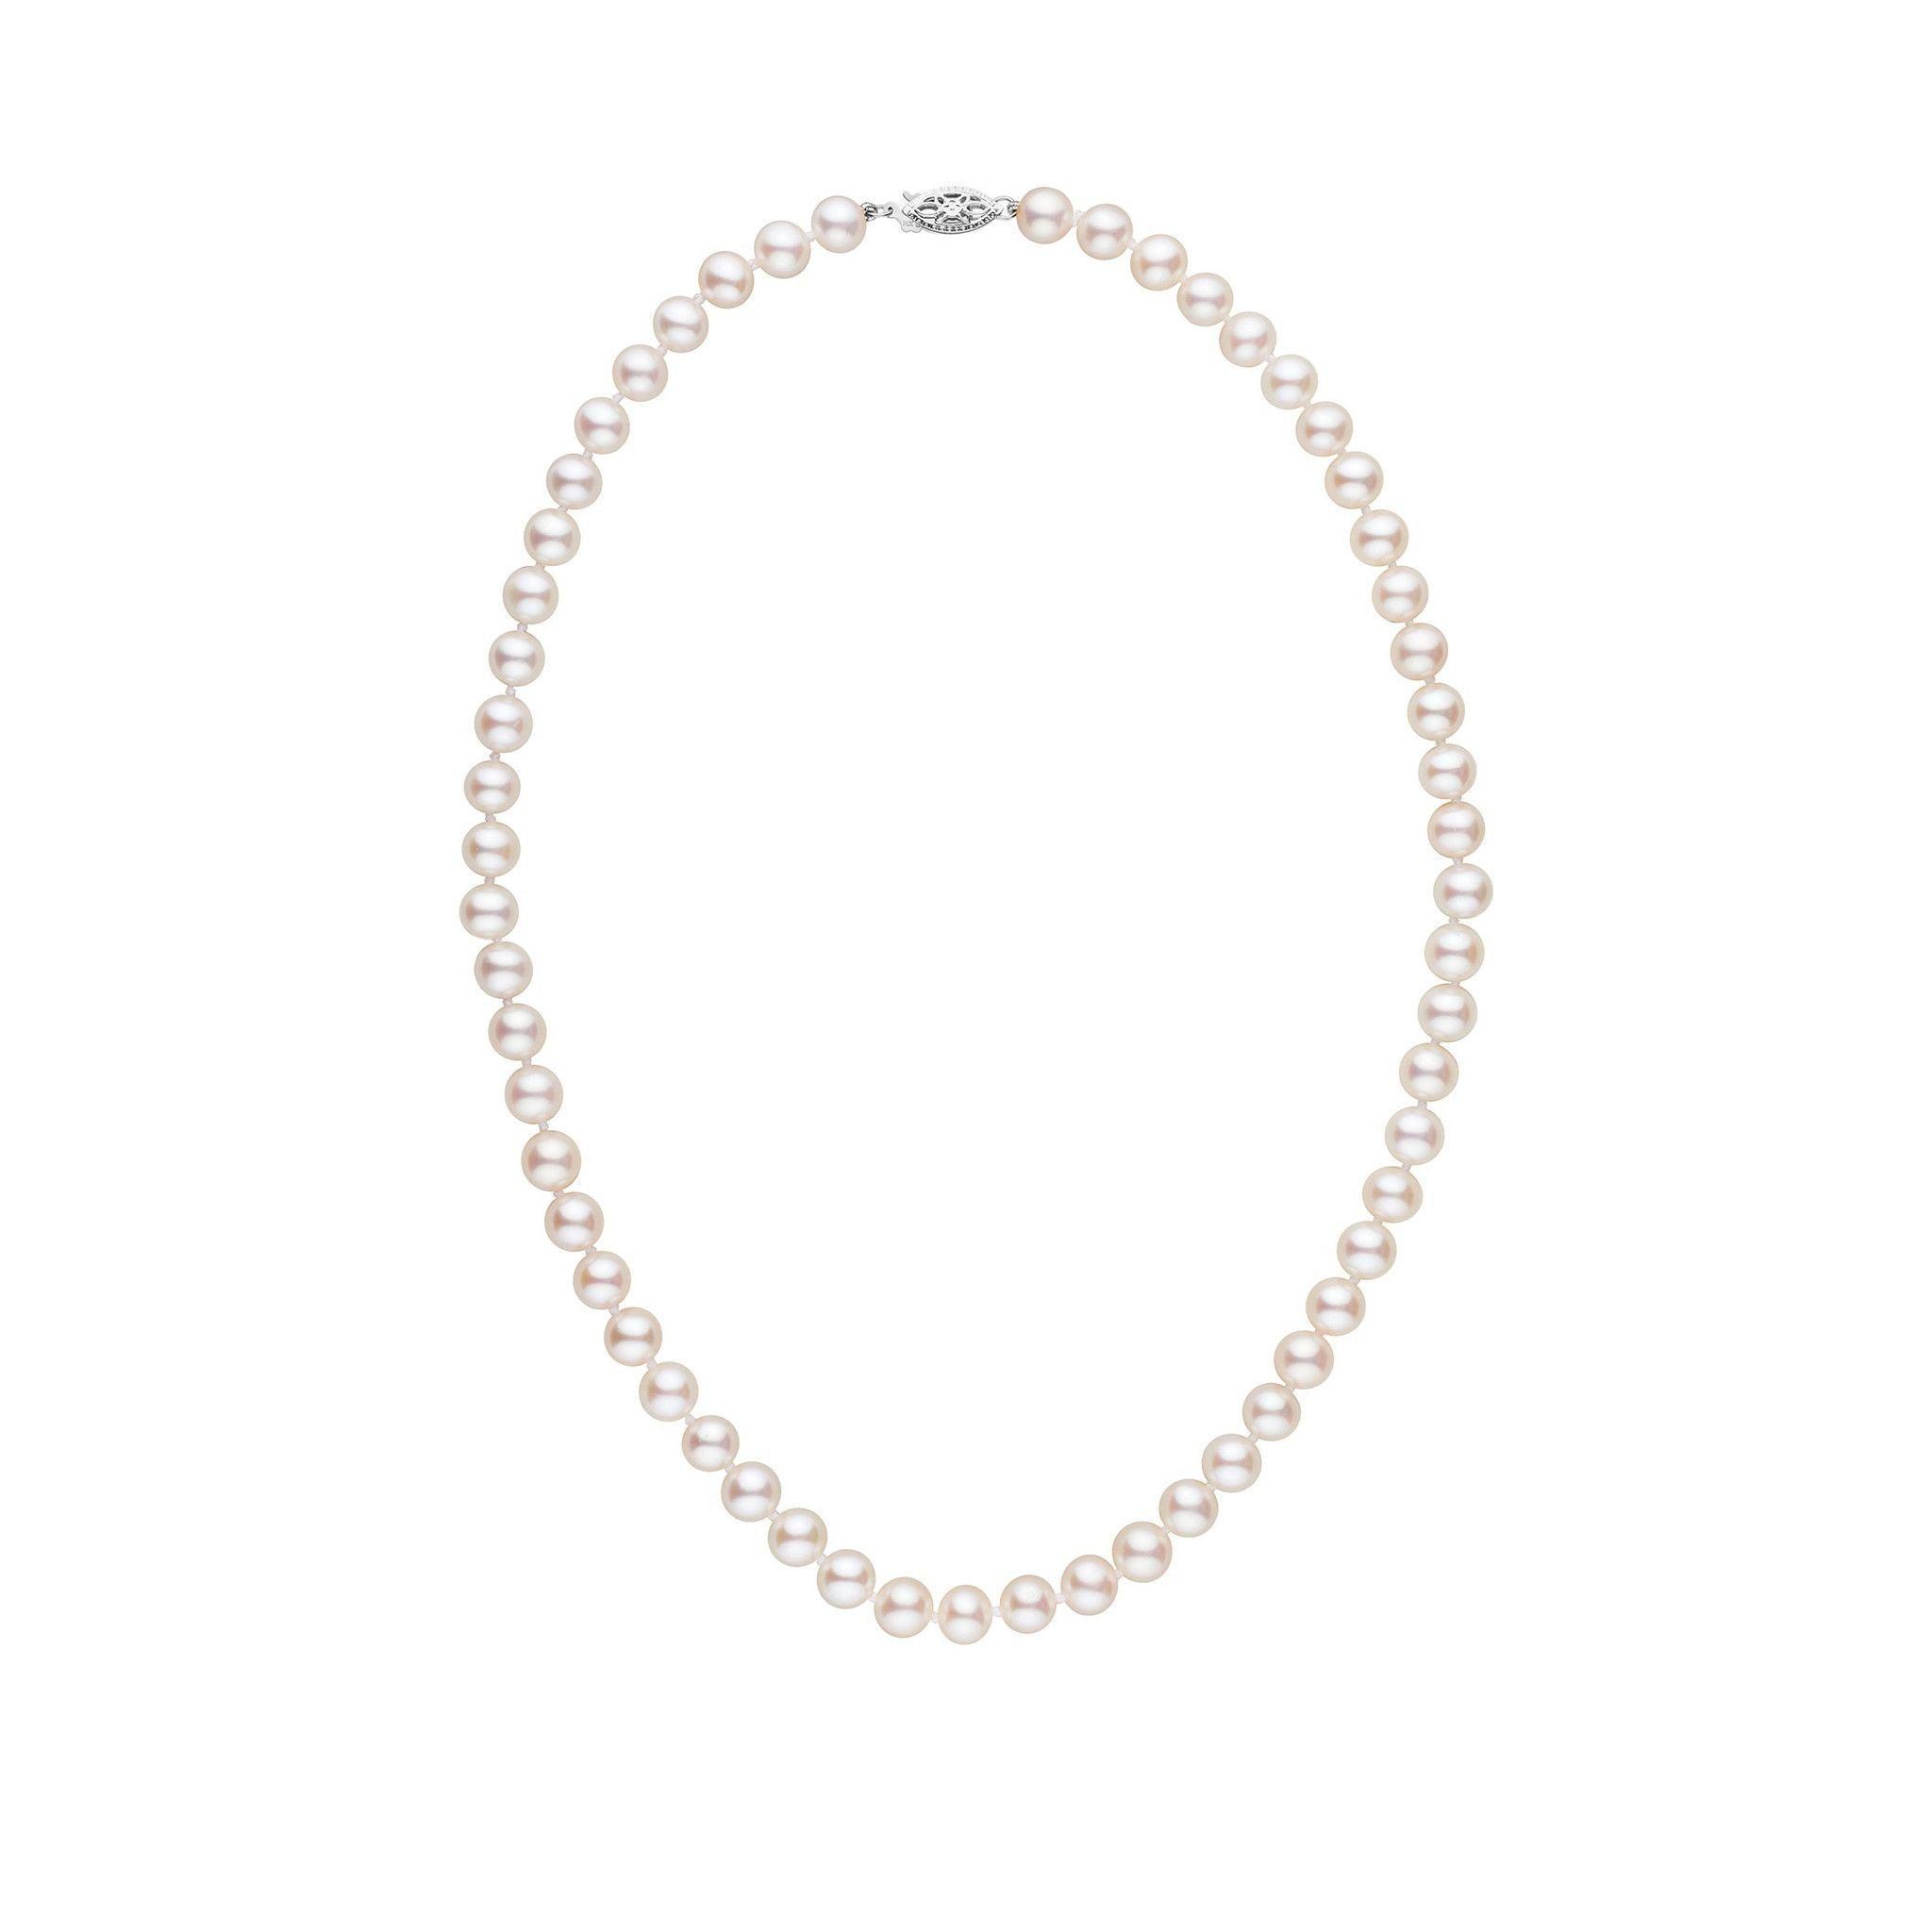 white mm single pear necklaces pearls water pearl necklace fresh sea